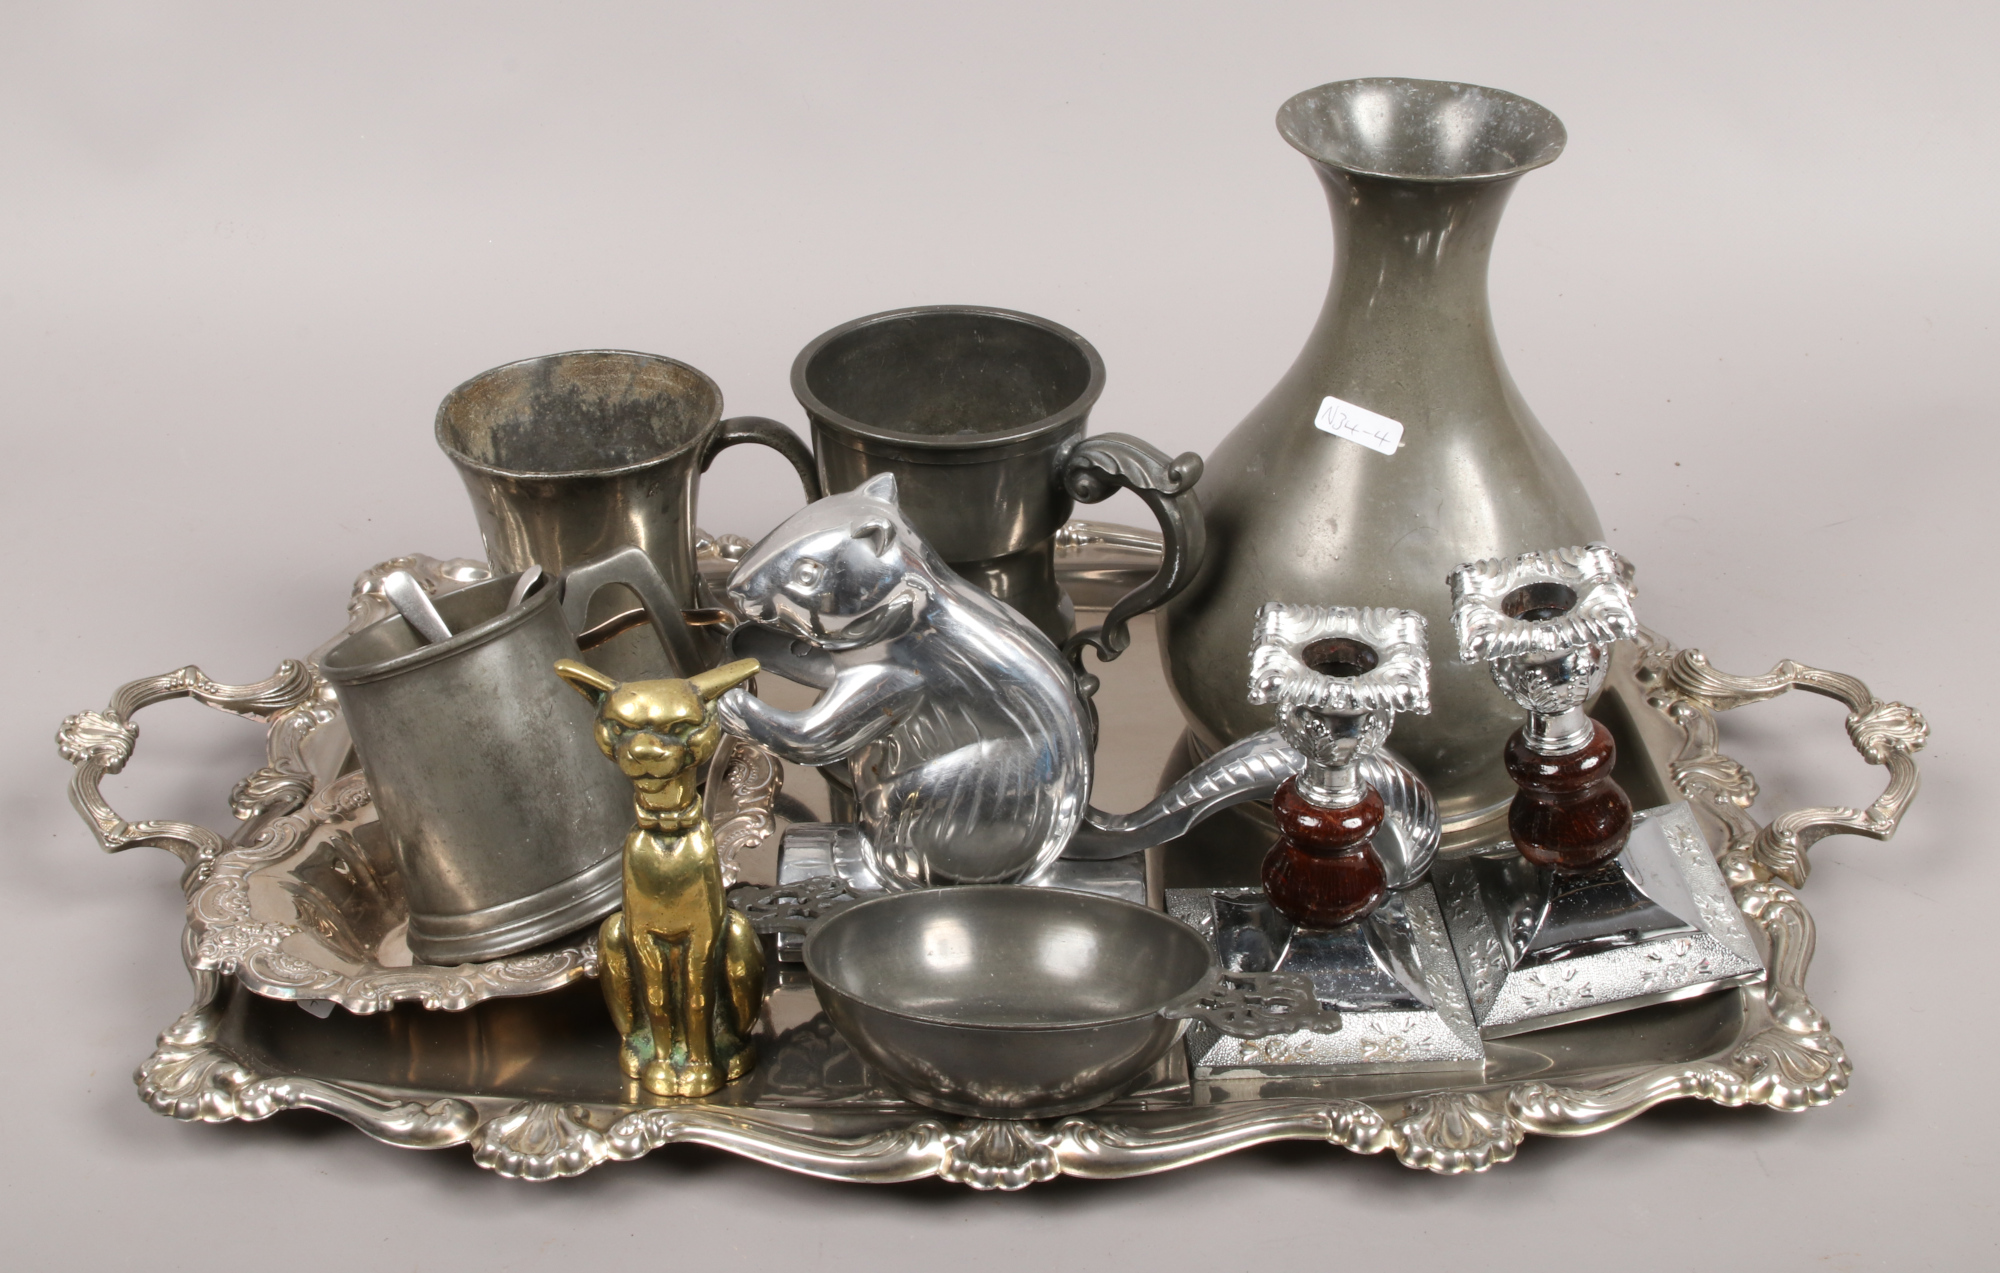 Lot 48 - A quantity of silver plate and pewter including tankards, candlesticks and a serving tray etc.